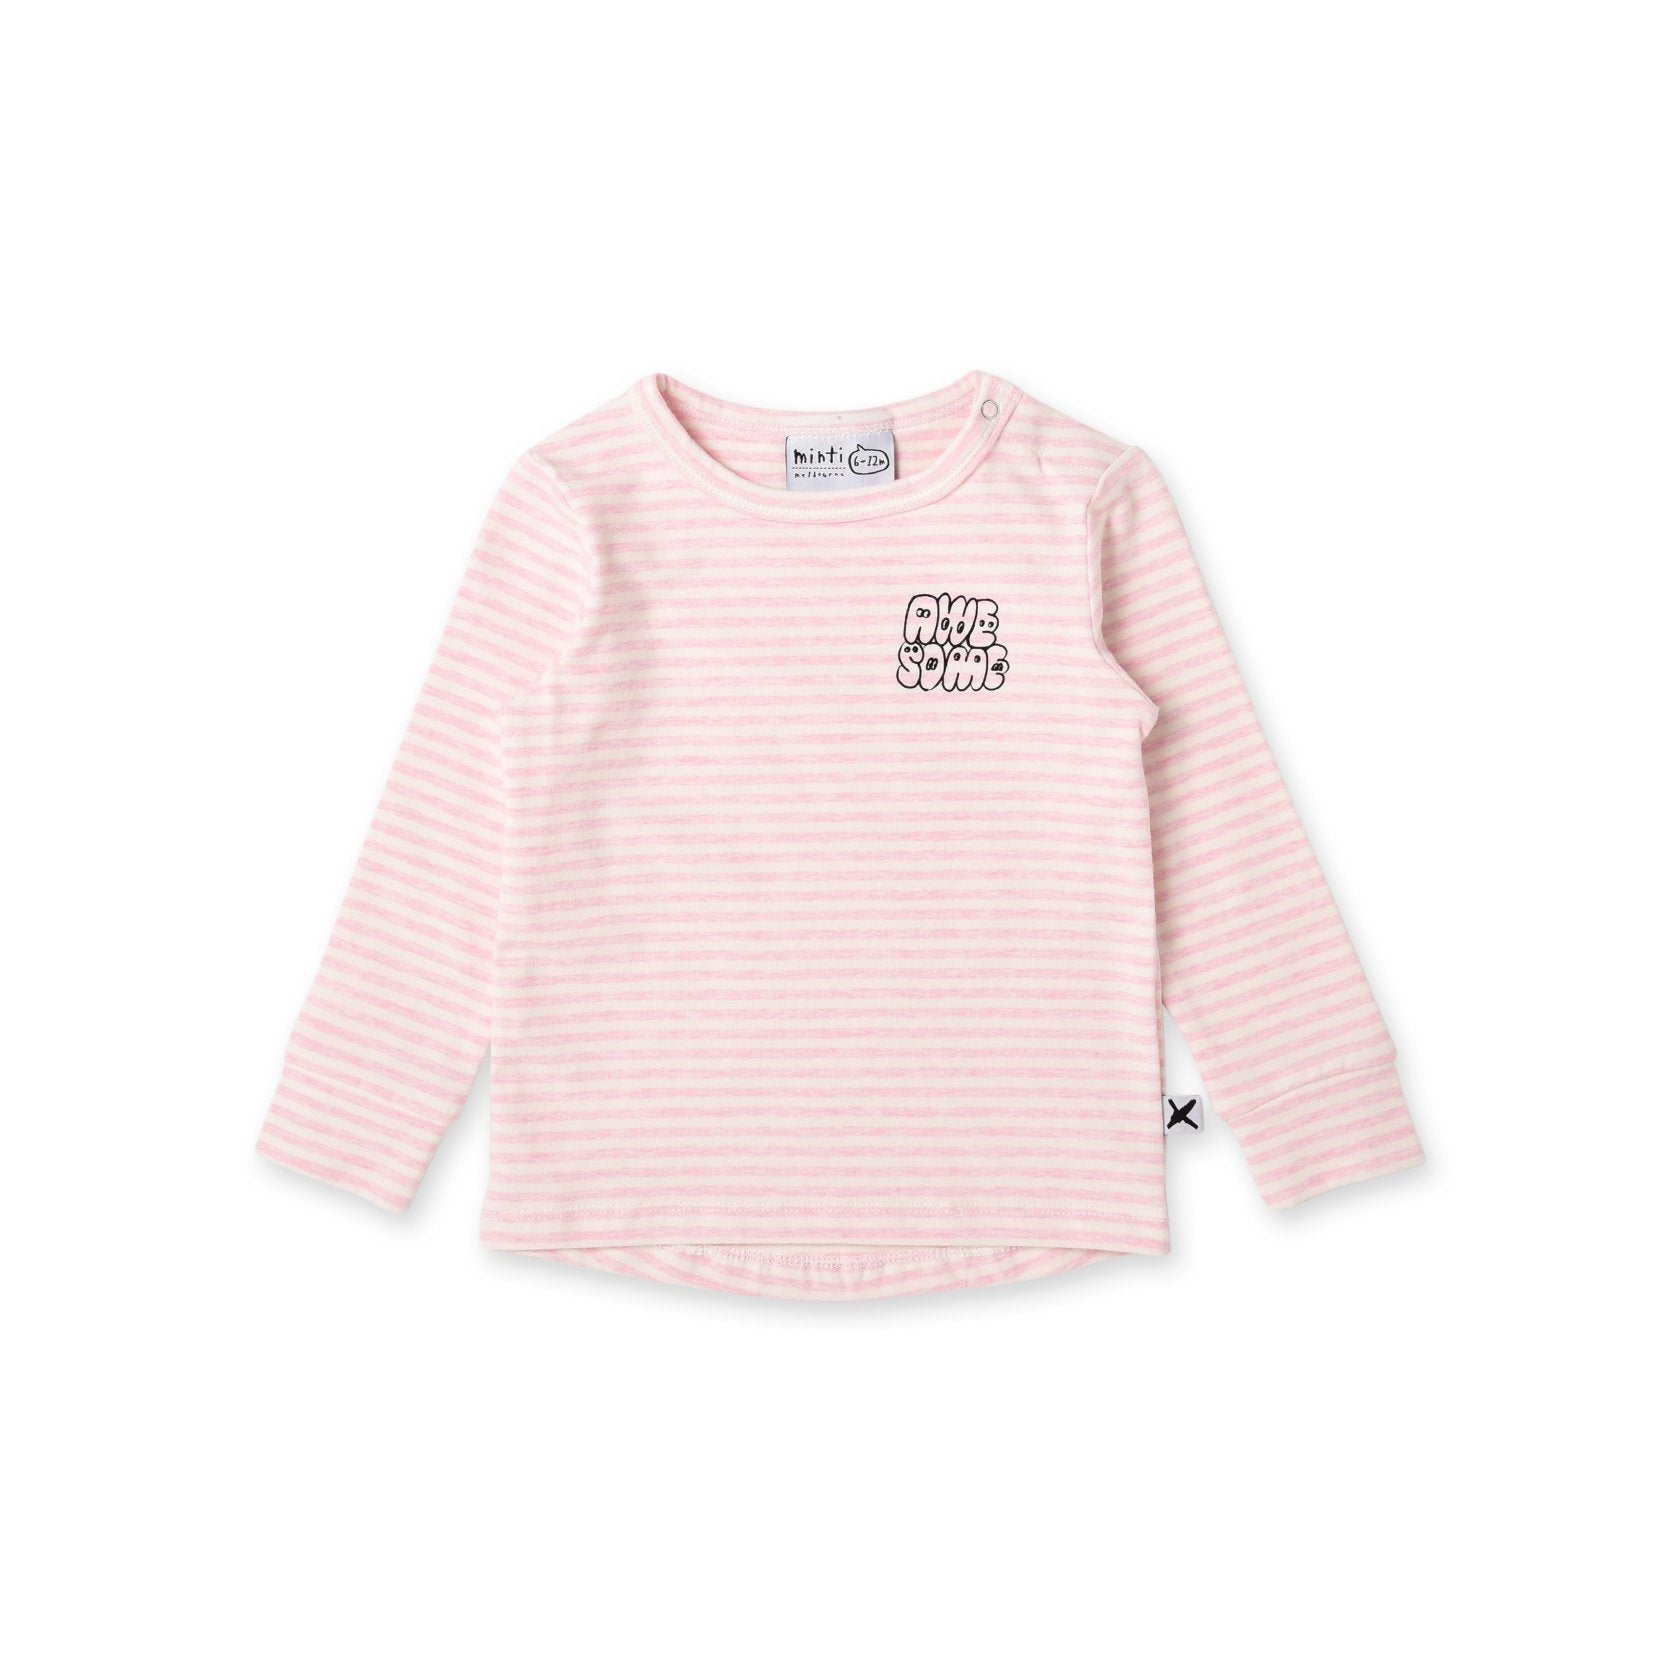 Awesome Baby Tee (Pink Stripe)